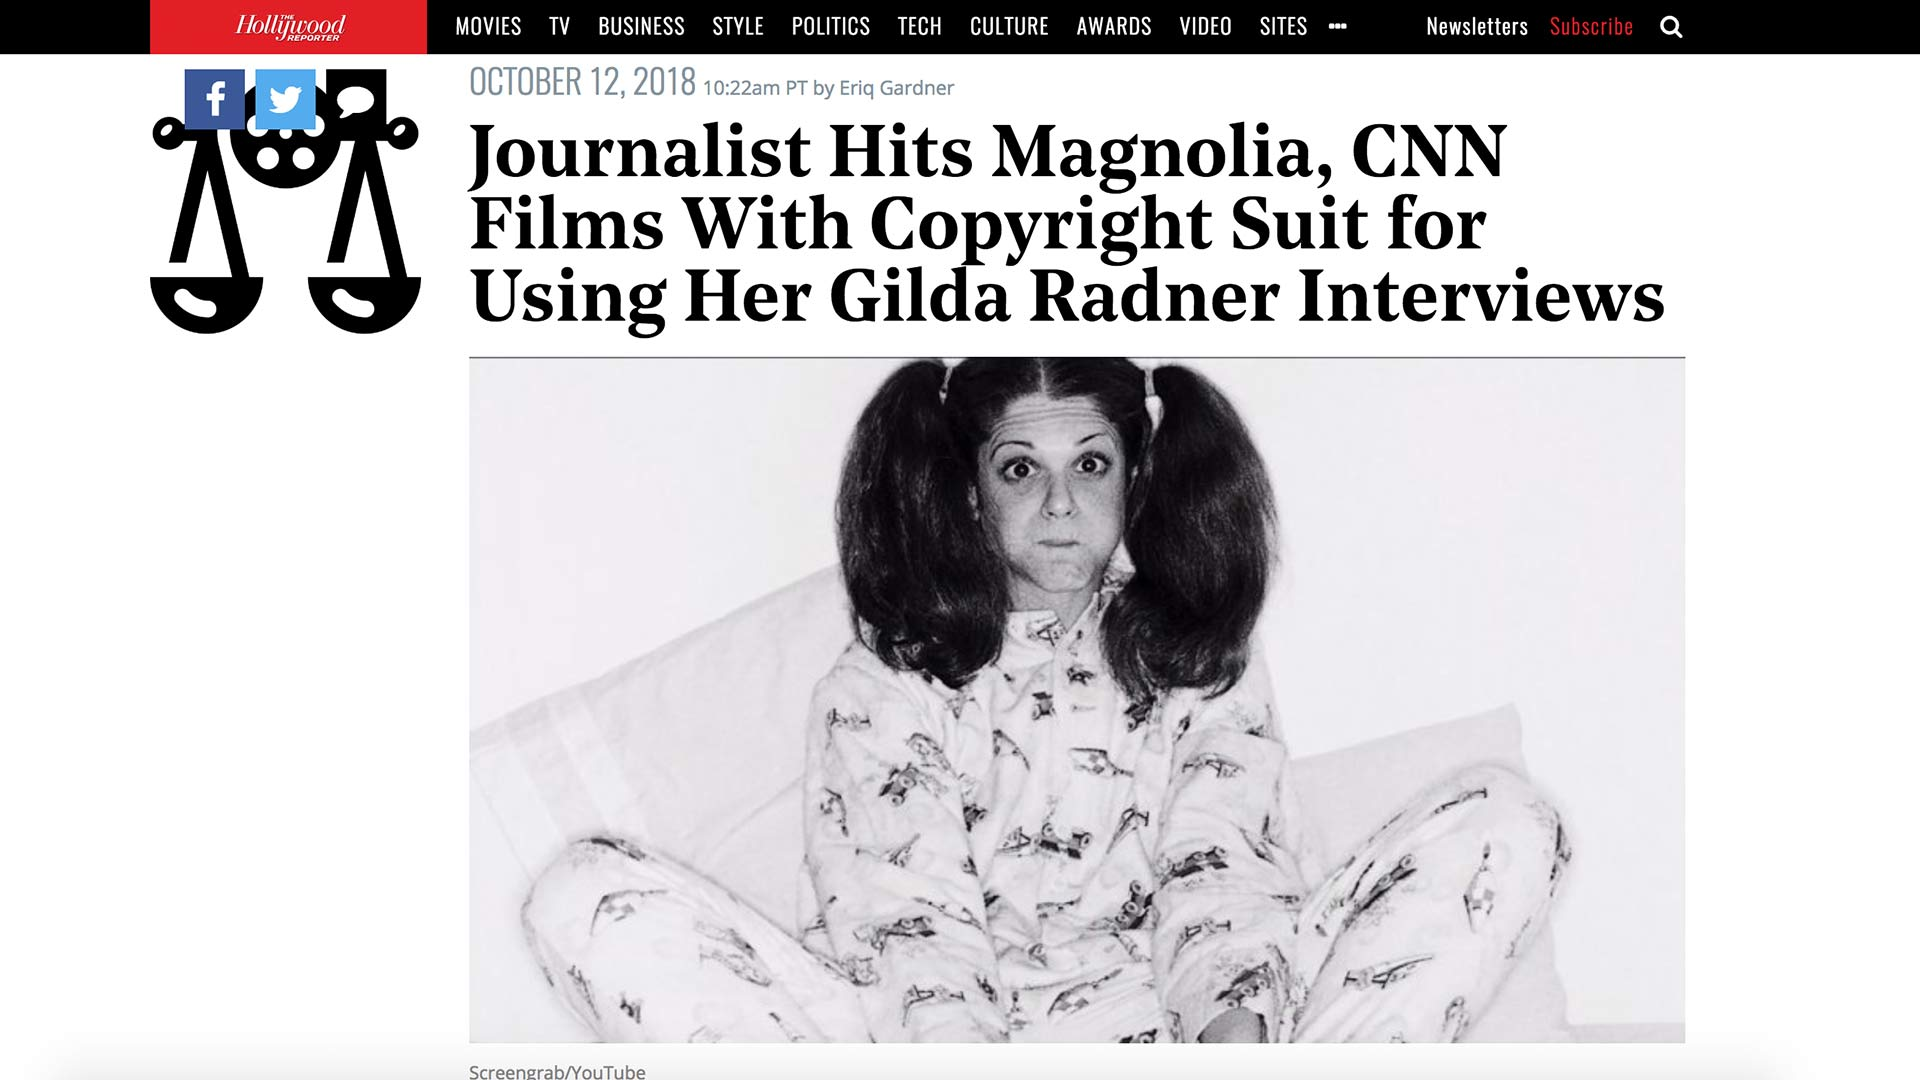 Fairness Rocks News Journalist Hits Magnolia, CNN Films With Copyright Suit for Using Her Gilda Radner Interviews